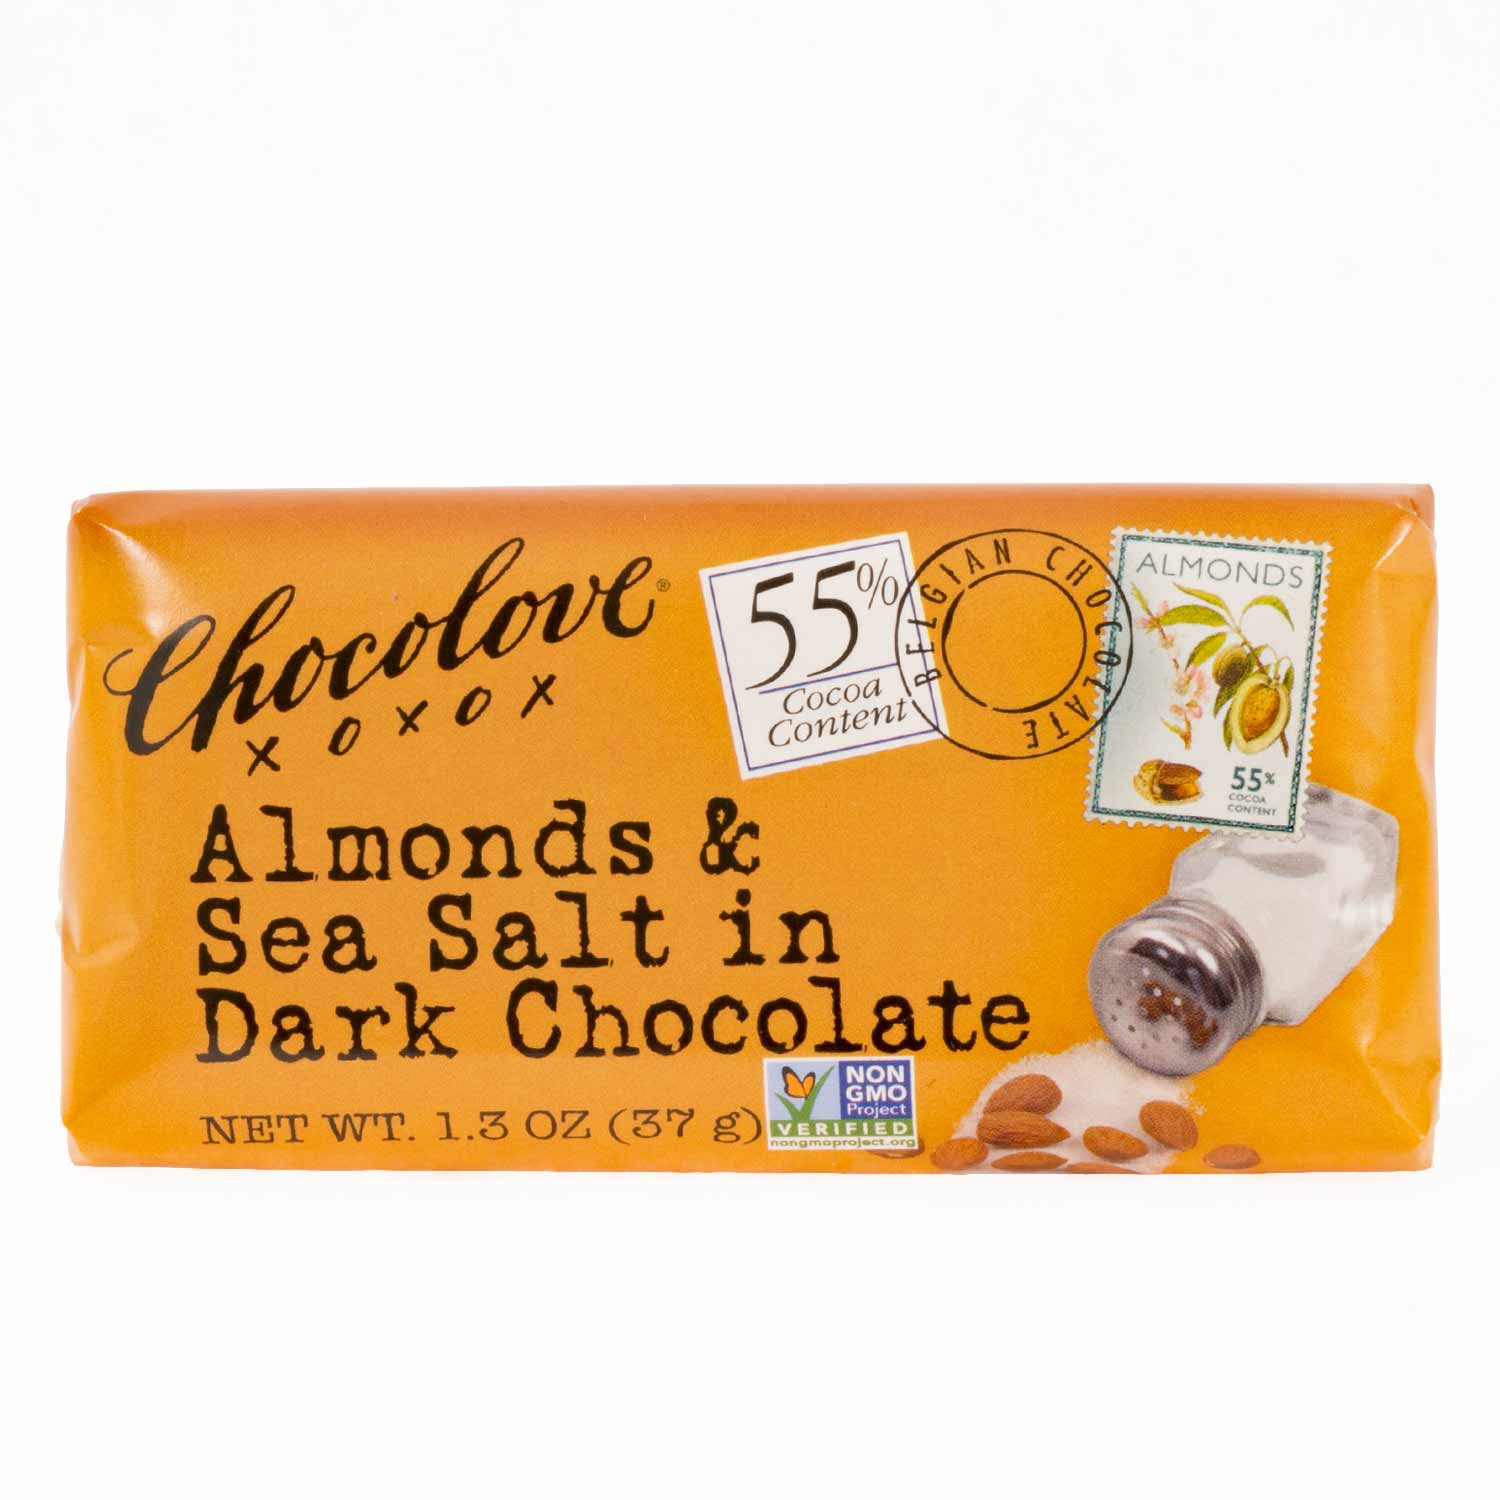 ALMONDS & SEA SALT